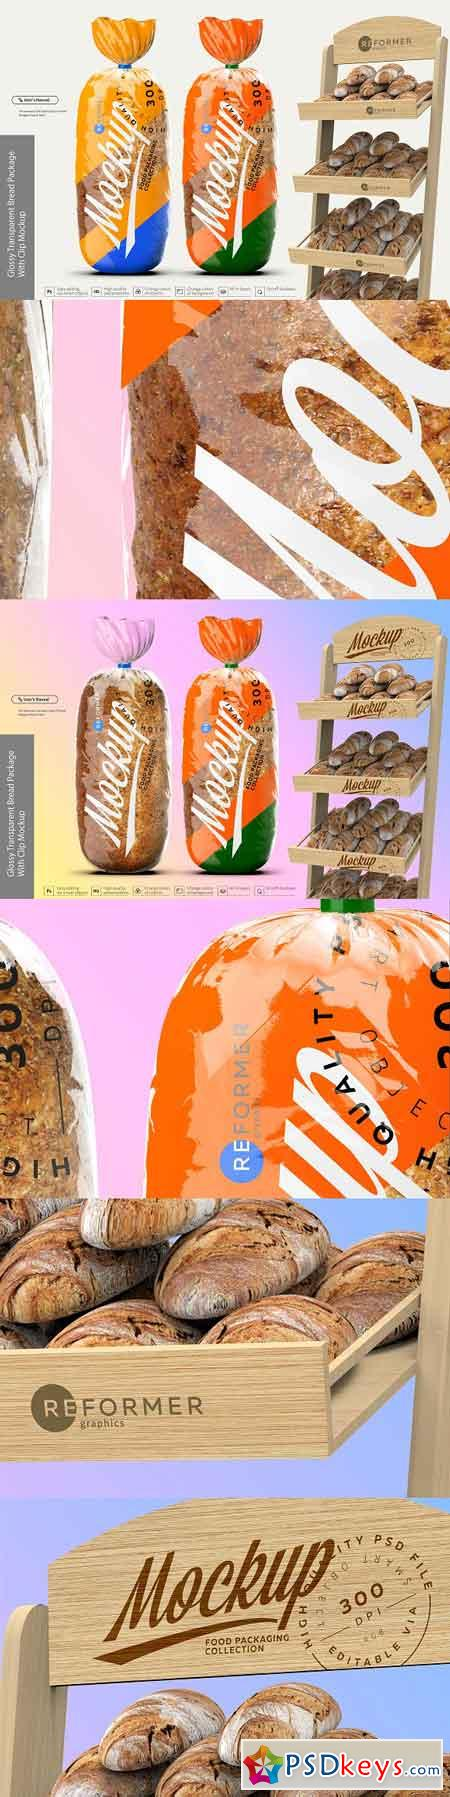 Glossy Transparent Bread Package 2834694